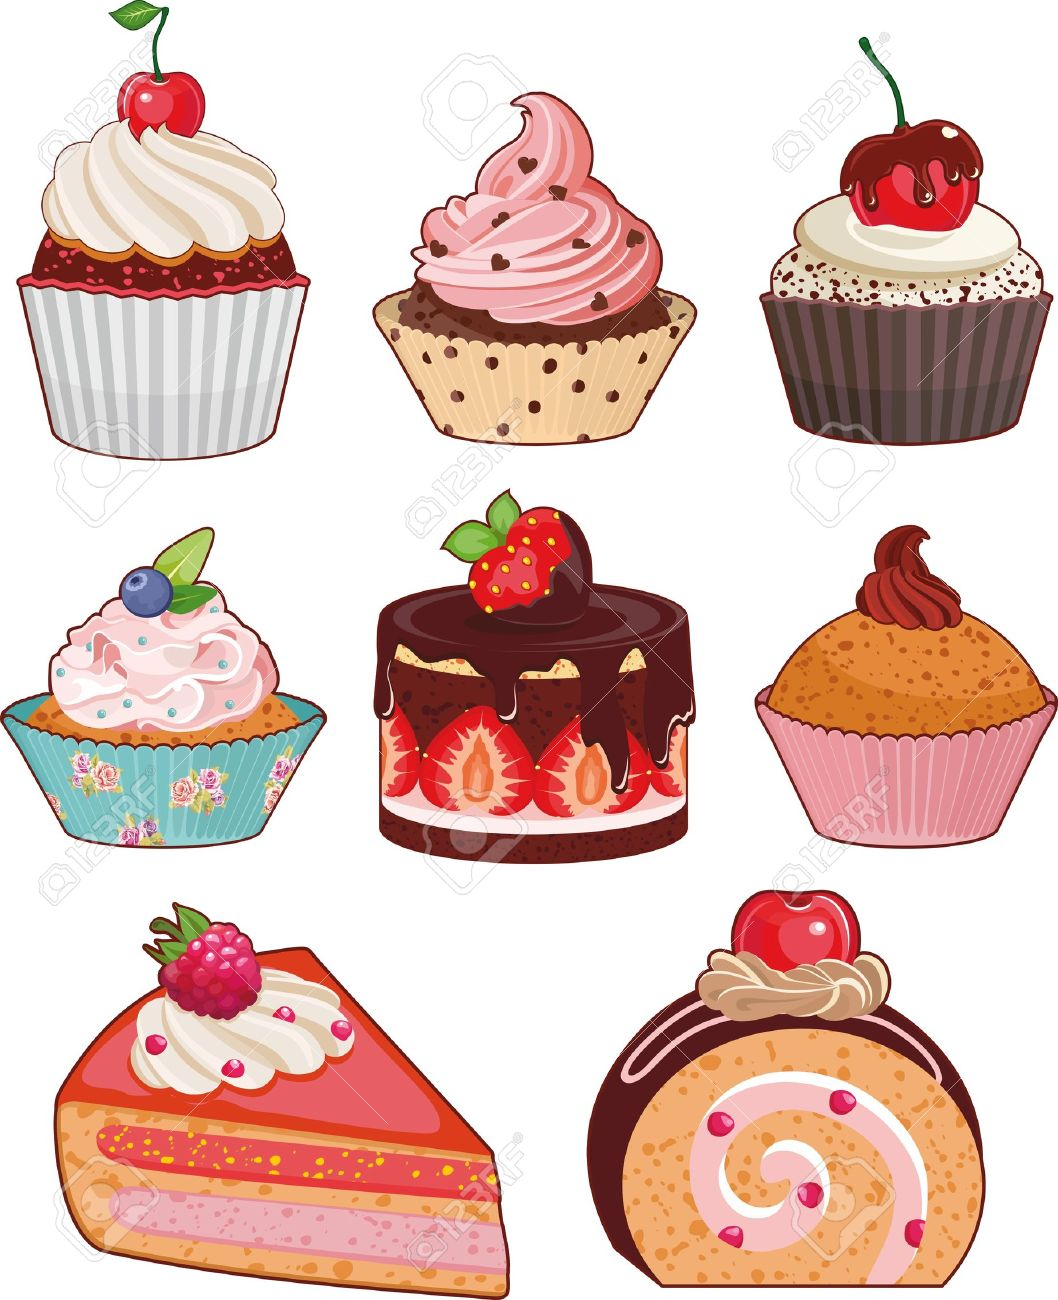 Set Of Appetizing Cakes With Different Berries And Stuffings.